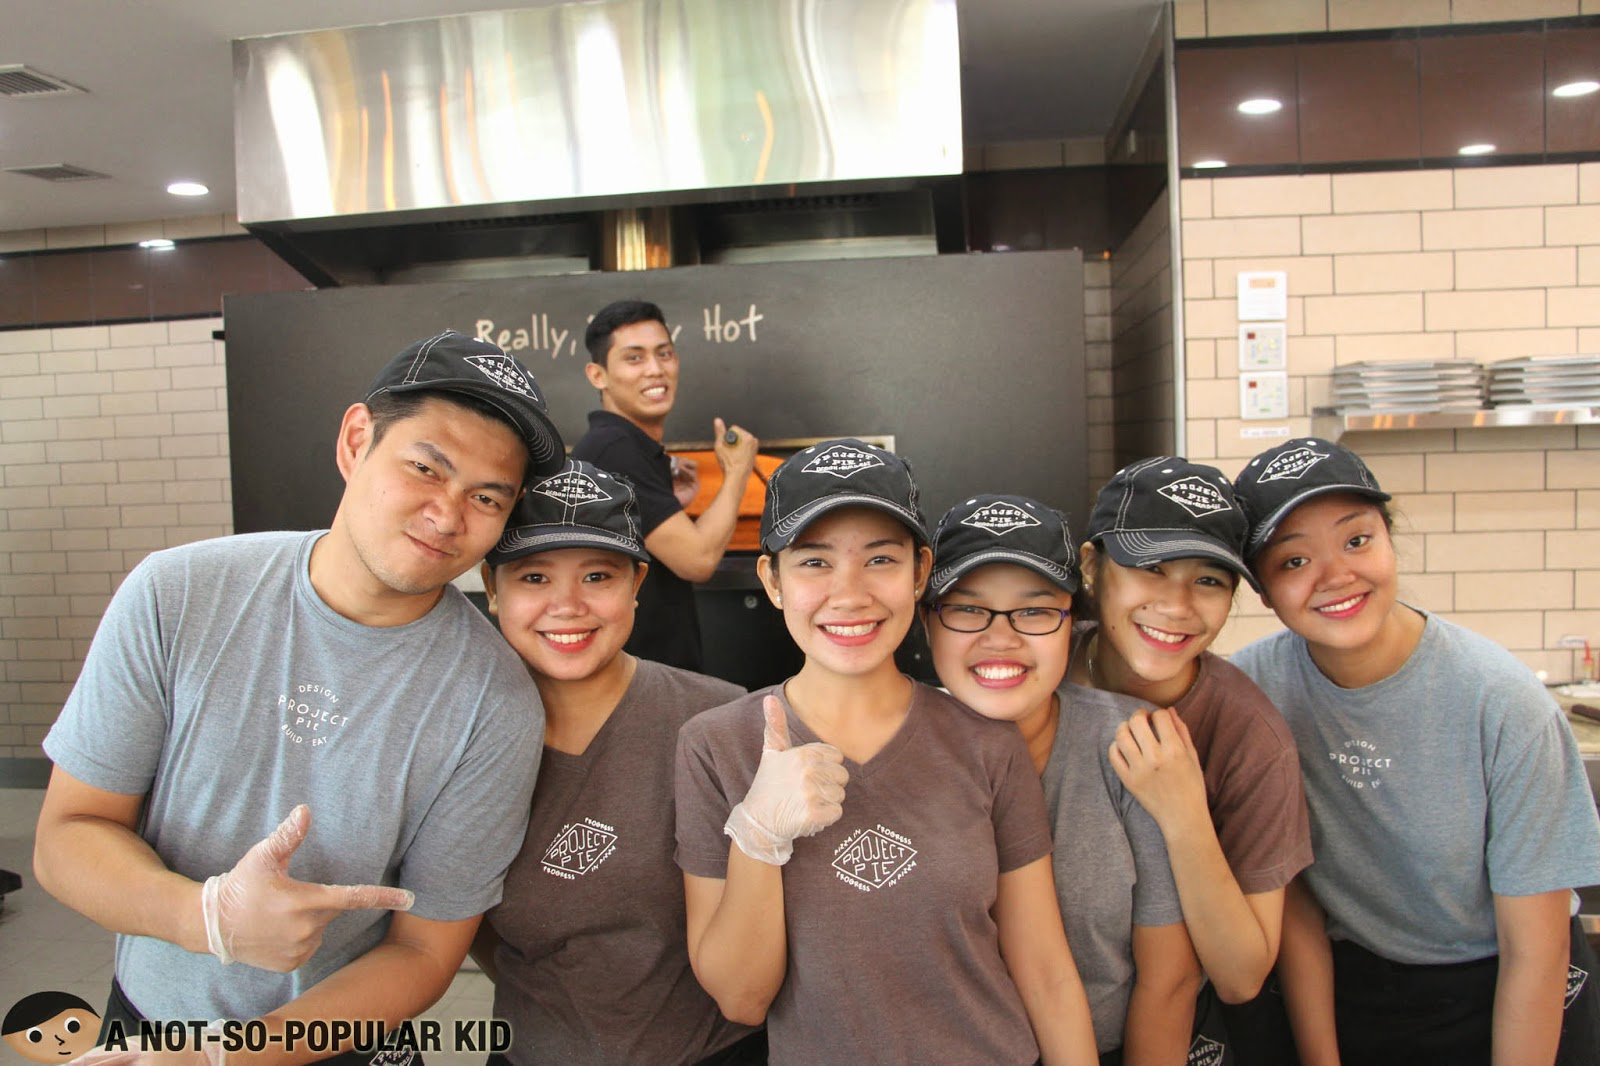 The awesome crew of the Project Pie in Blue Bay, Pasay City